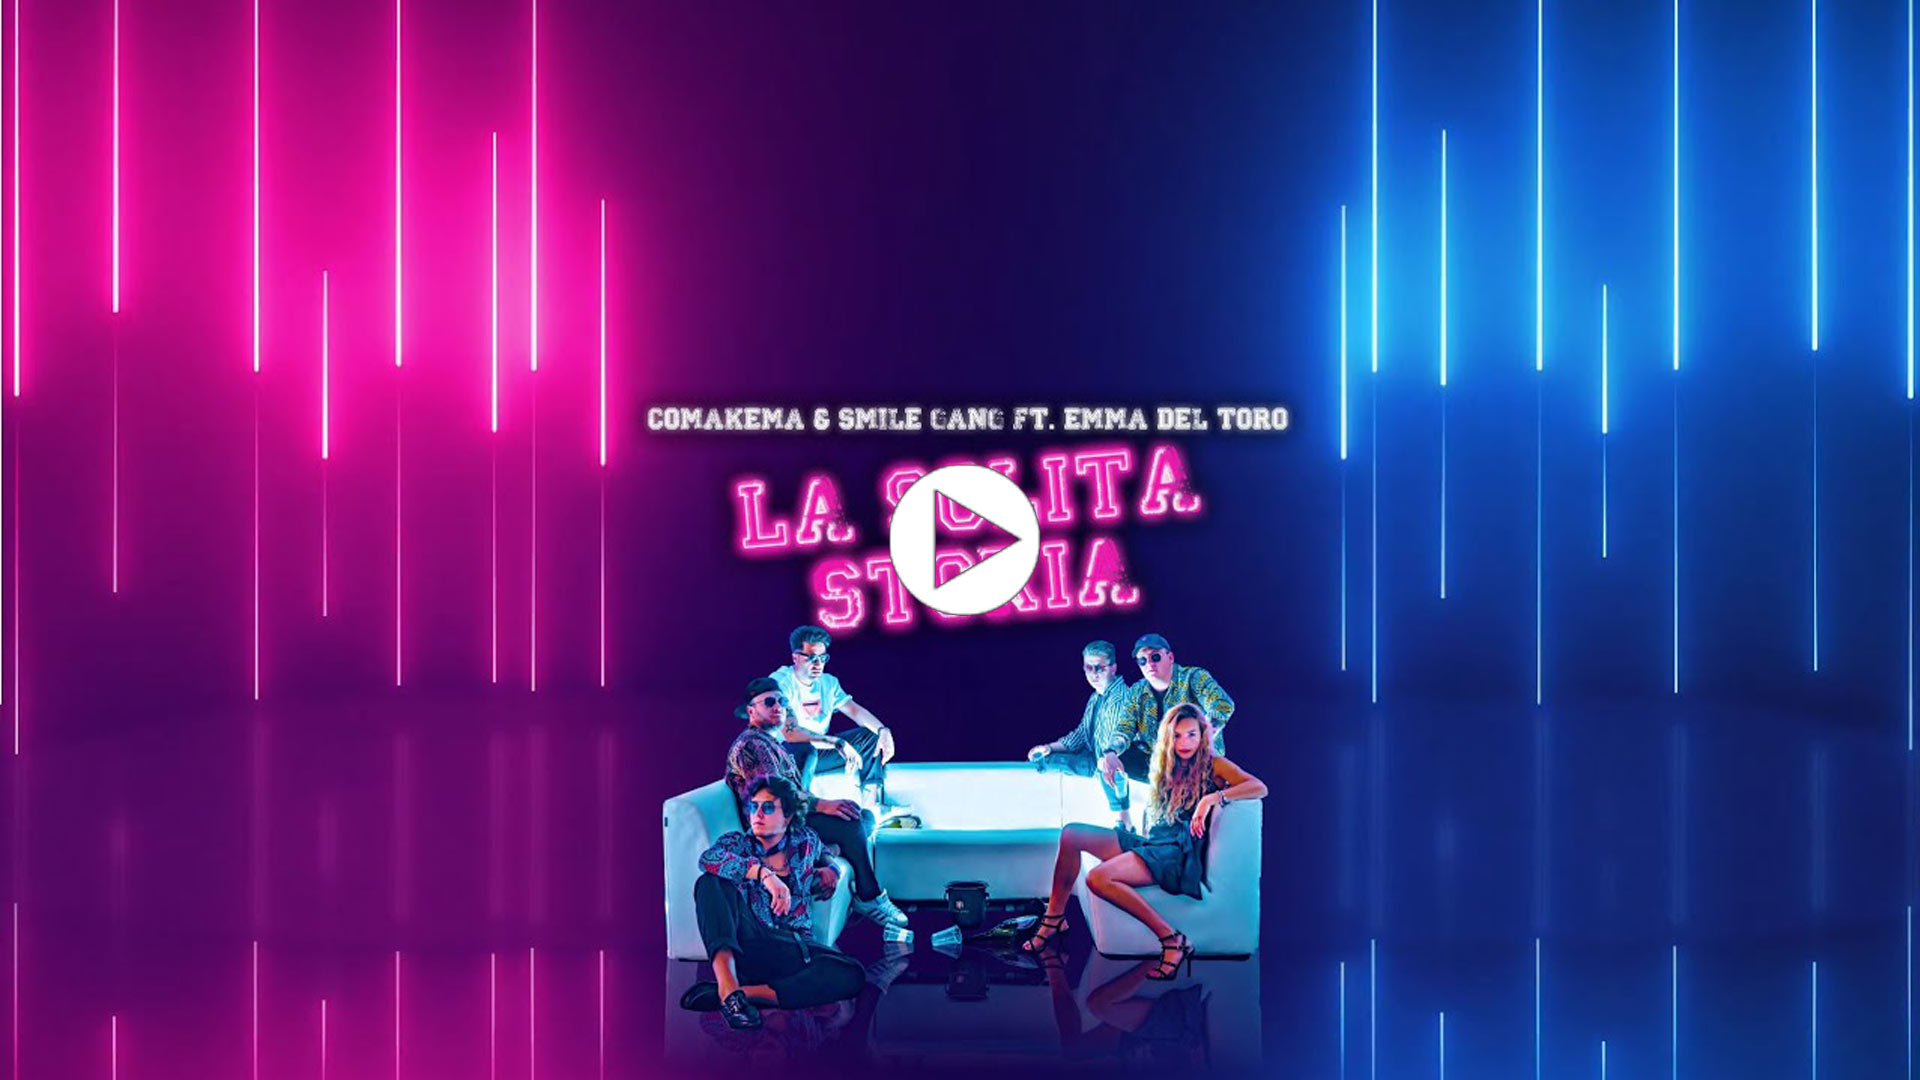 Comakema&Smile Gang - La Solita Storia (feat. Emma Del Toro) (Official Video)